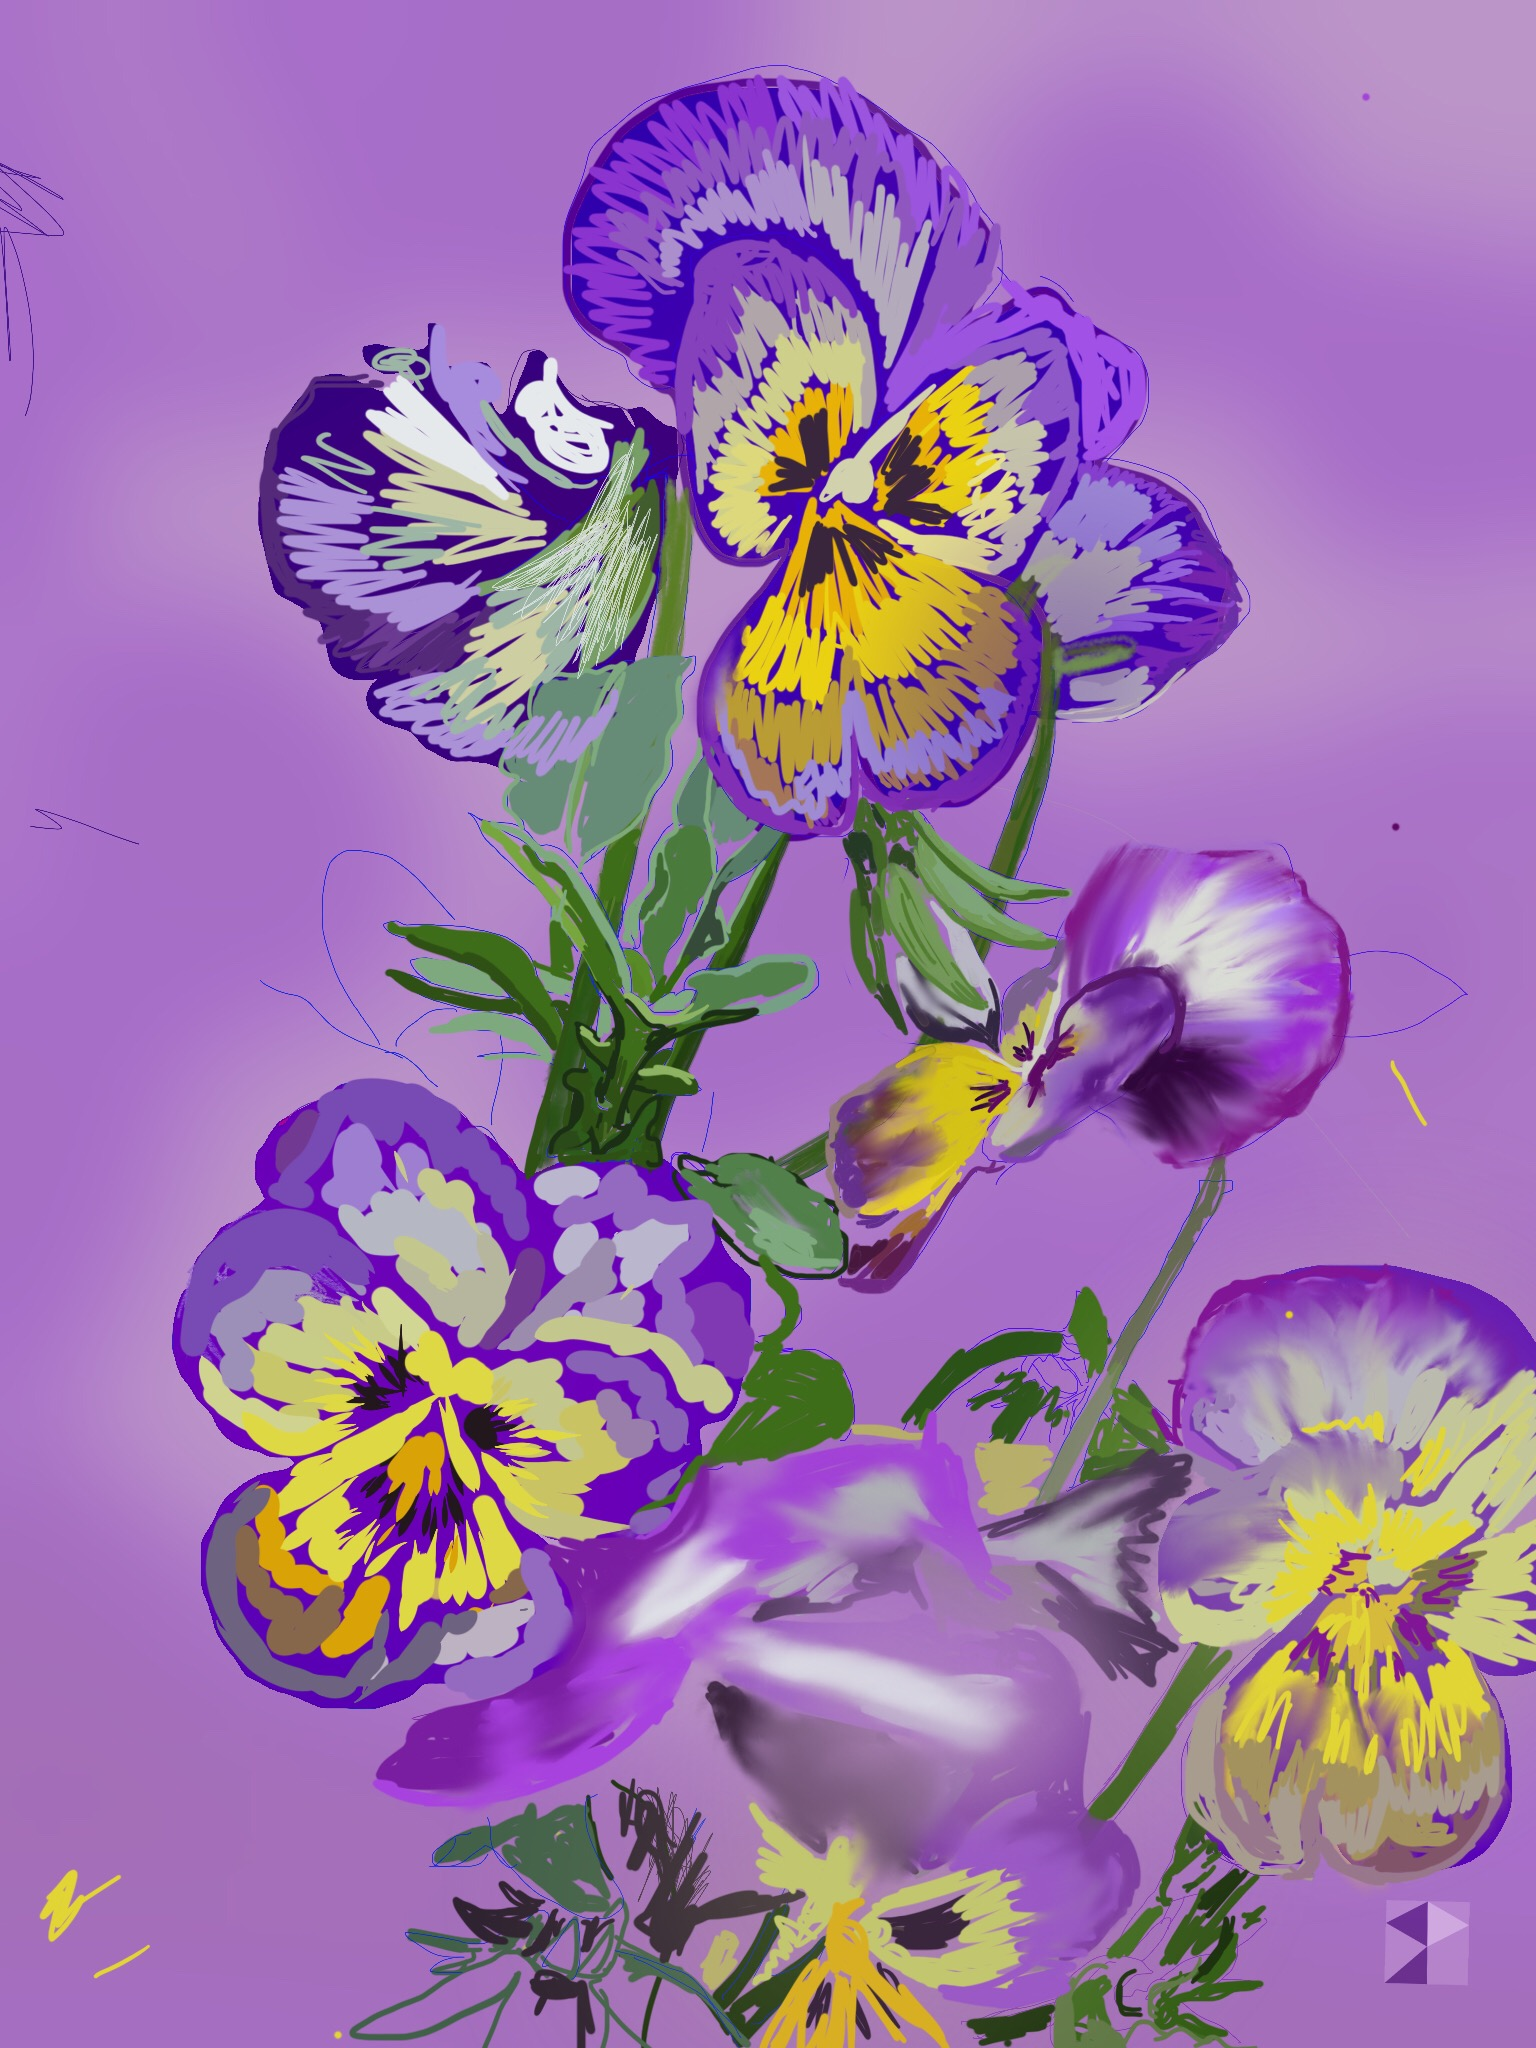 "Pansies   Electronics Painting, iPad, Procreate, Pencil 53,  Photoshop. © 2016 dimensions variable to 48"" x 60""  giclee limited edition prints available contact the artist"